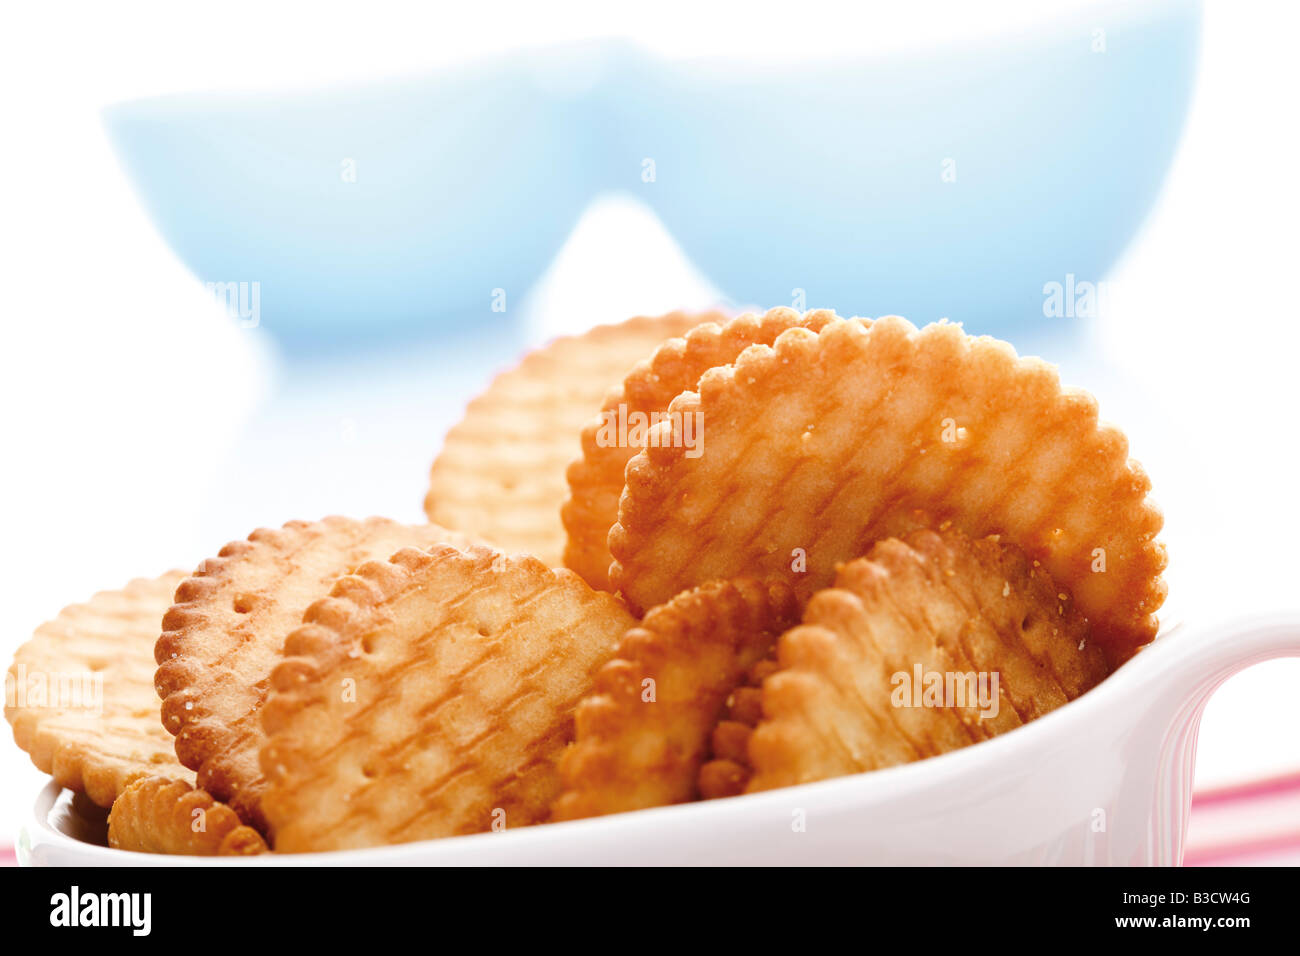 Cracker in bowl, close-up Photo Stock